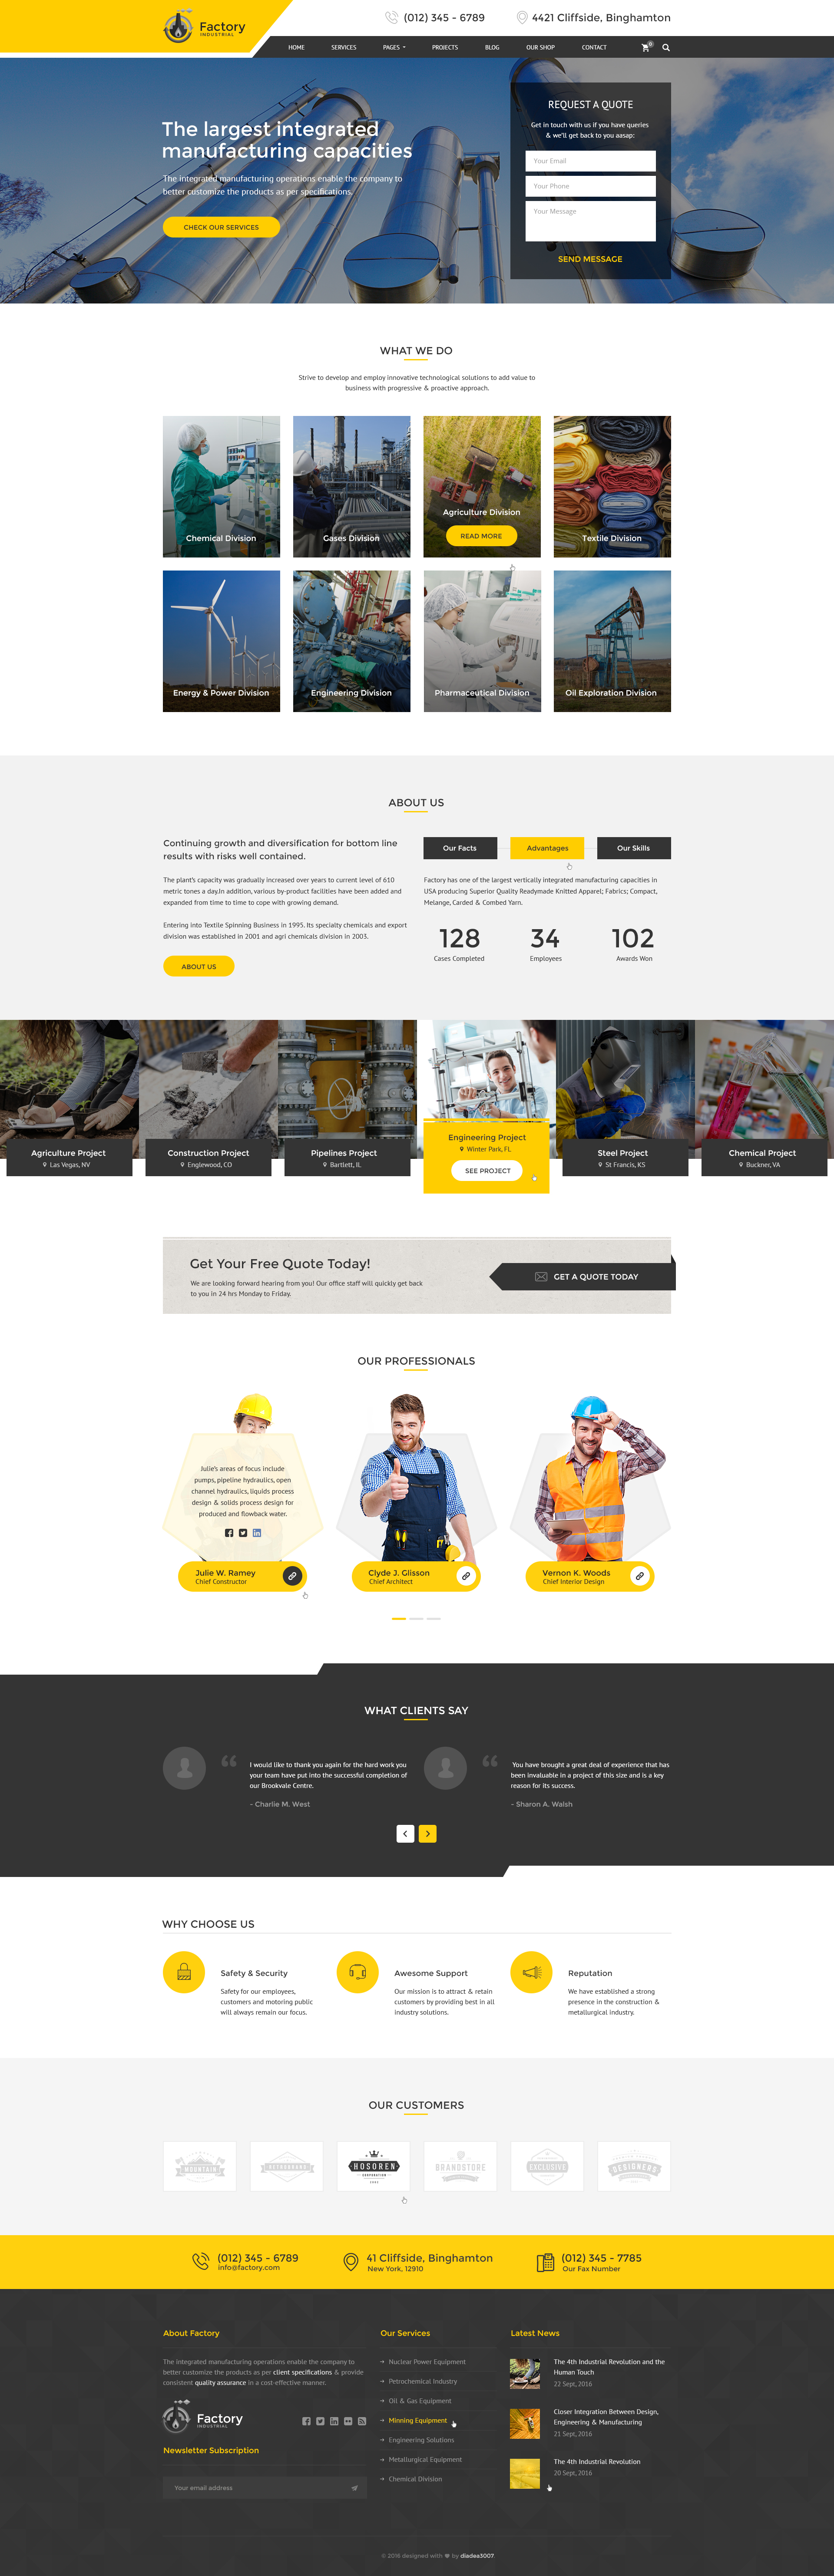 Old Fashioned Wordpress Template Psd Ideas - Resume Ideas - namanasa.com